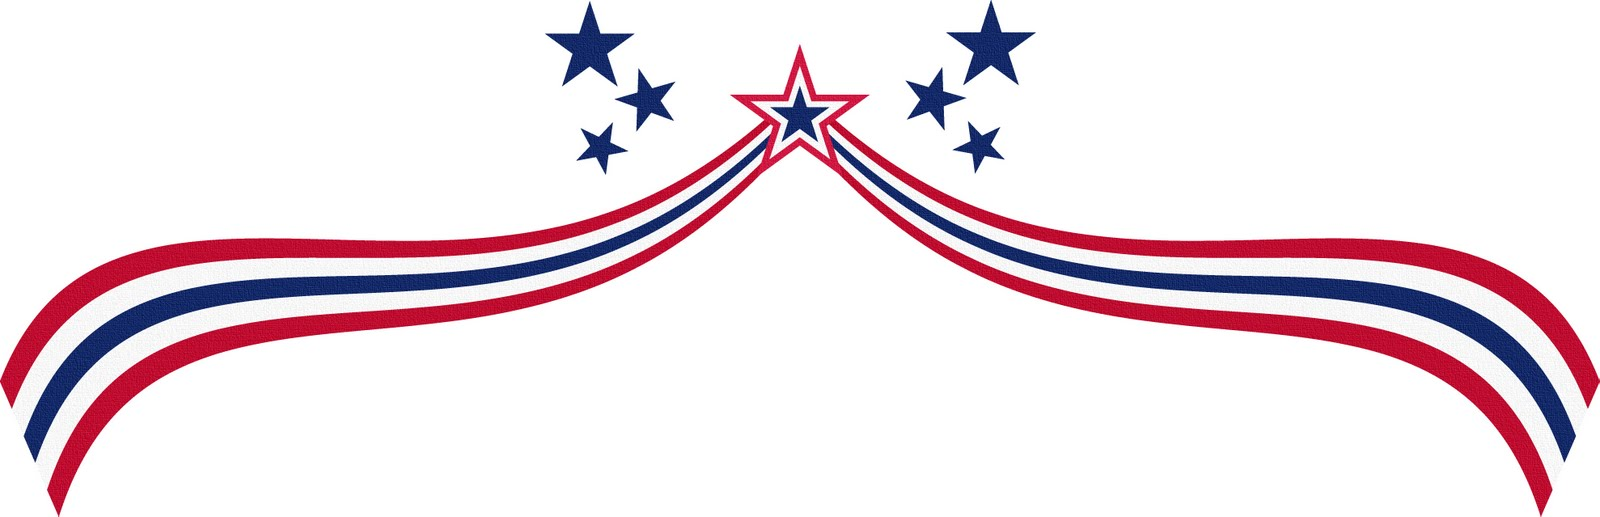 Free Clipart 4th Of July Borders School -Free Clipart 4th Of July Borders School Clipart-8